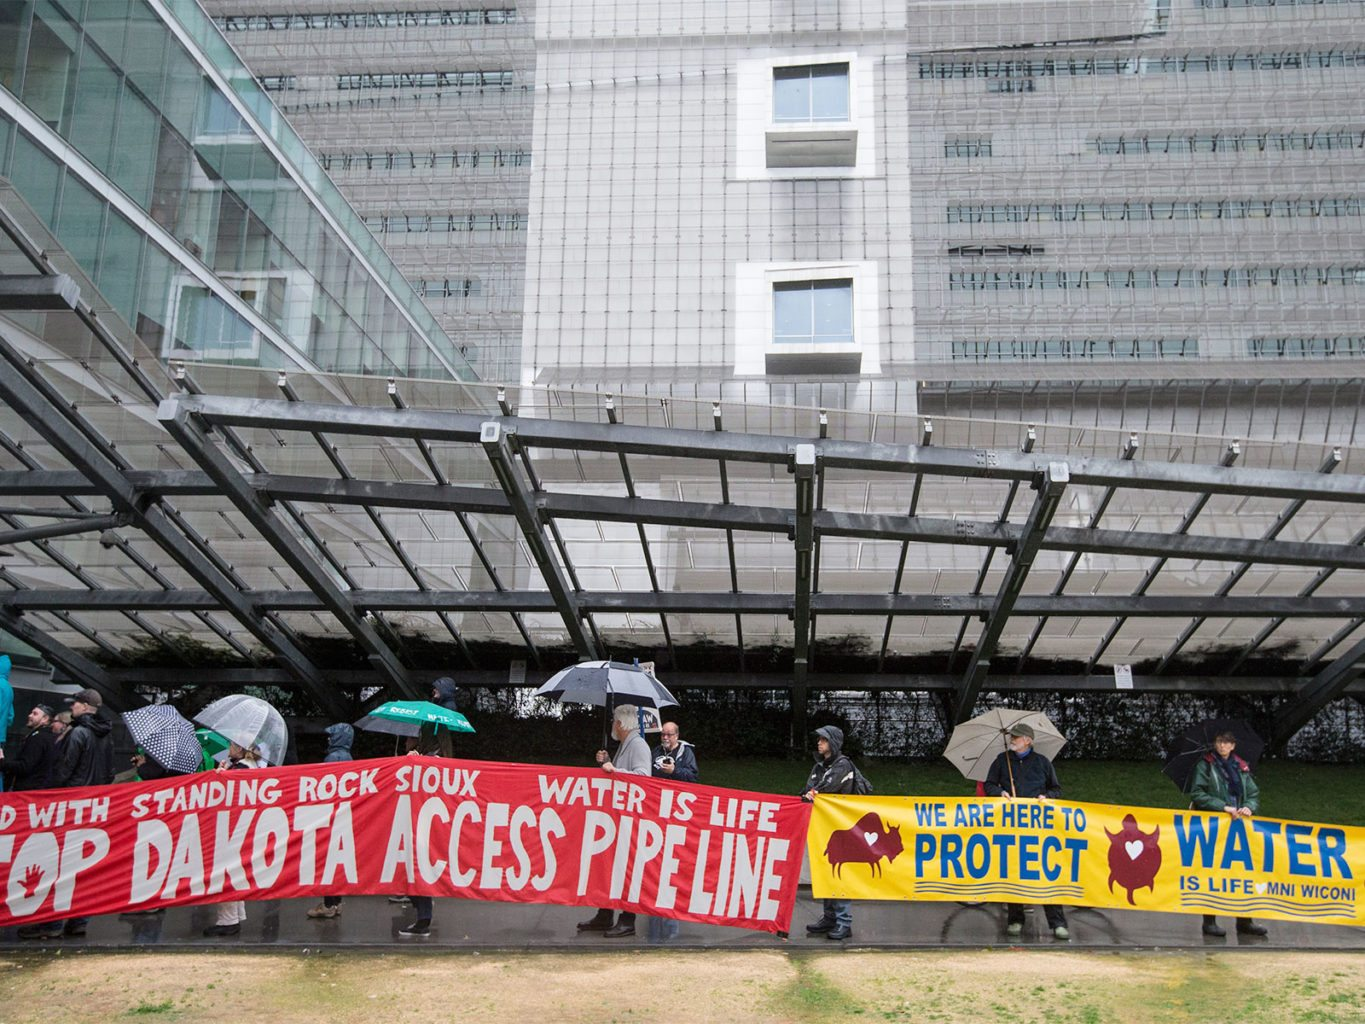 People gather outside the main entrance of the Federal Building on Feb. 8 in San Francisco to protest President Donald Trump's approval of the Dakota Access Pipeline. (Jessica Christian/S.F. Examiner)